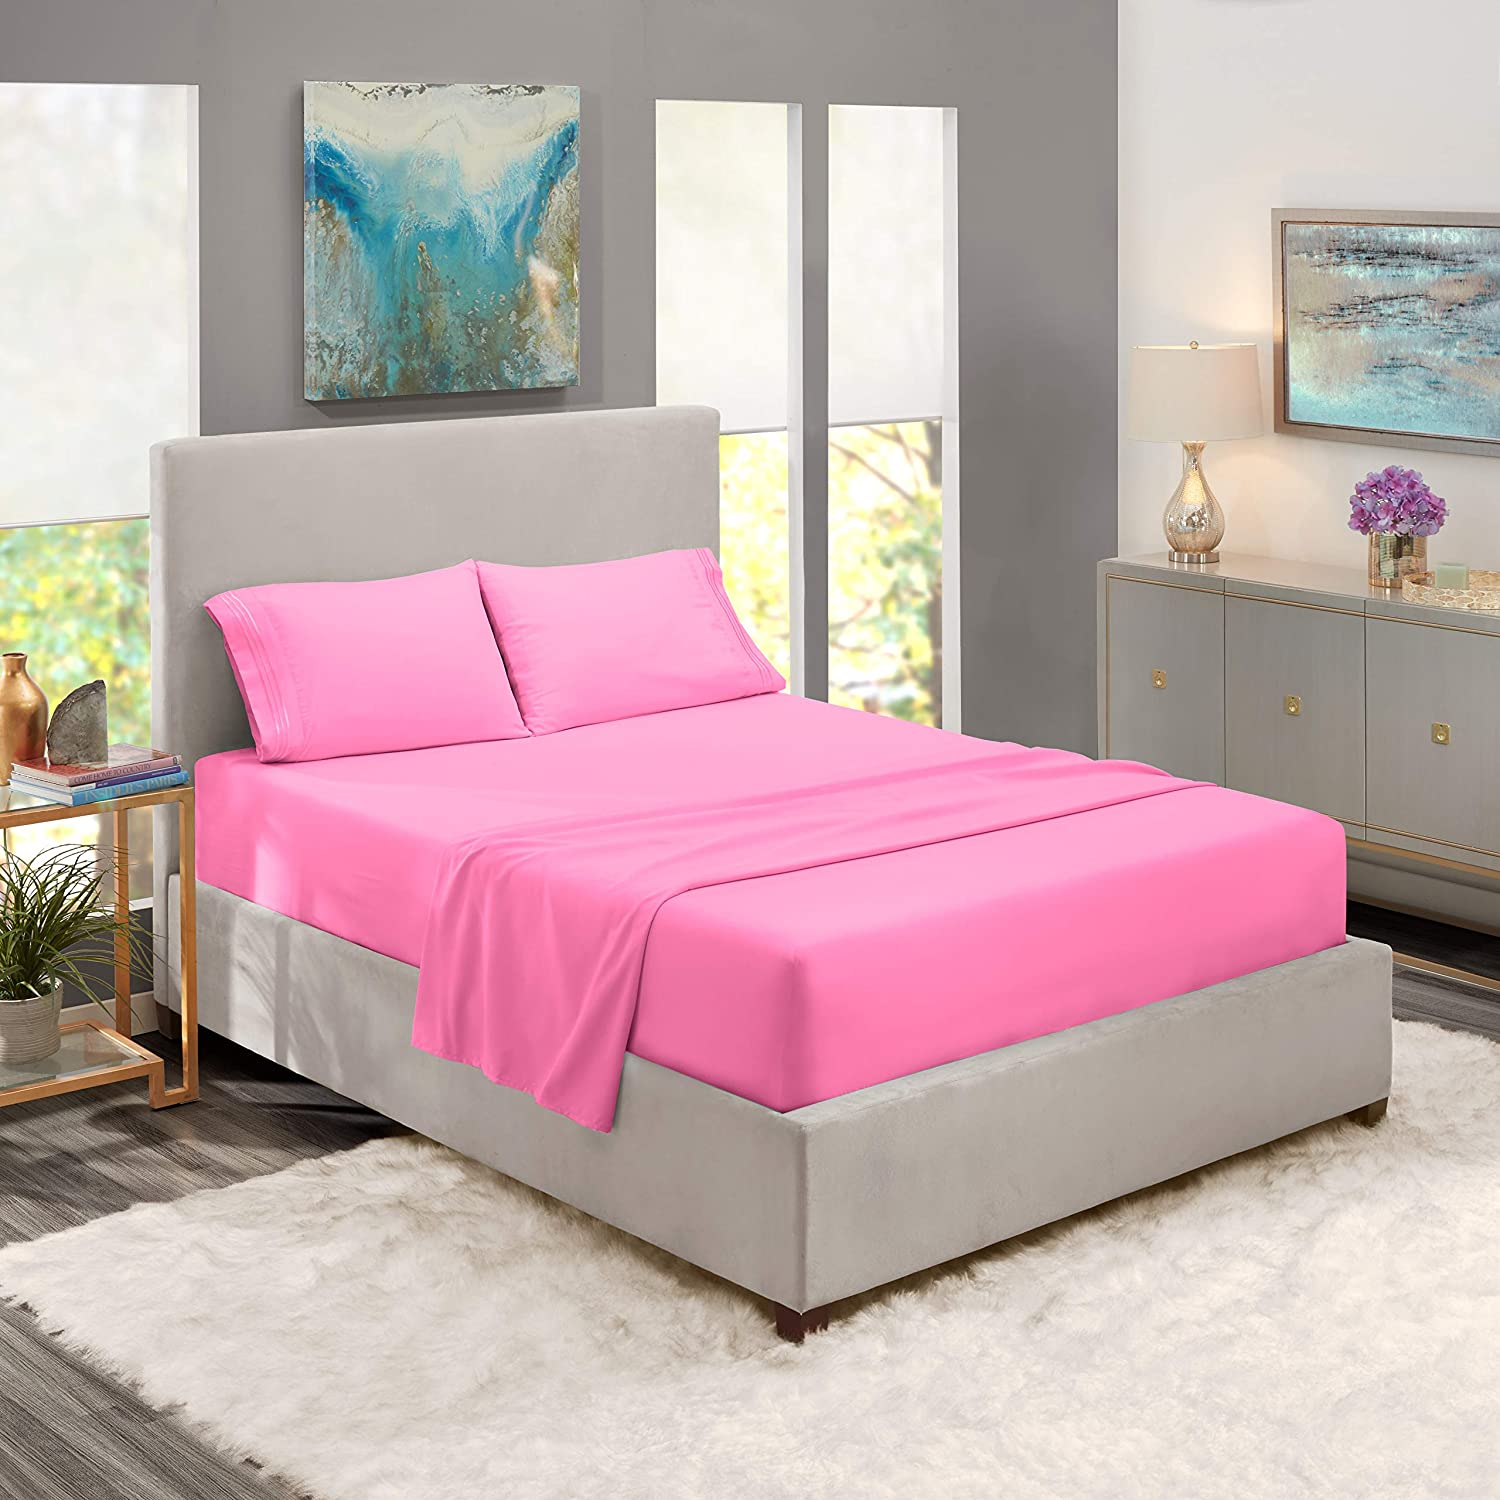 Nestl Deep Pocket Cal King Sheets 4 Piece Cal King Size Bed Sheets with Fitted Sheet, Flat Sheet, Pillow Cases Extra Soft Set with Deep Pockets for CK Size - Light Pink